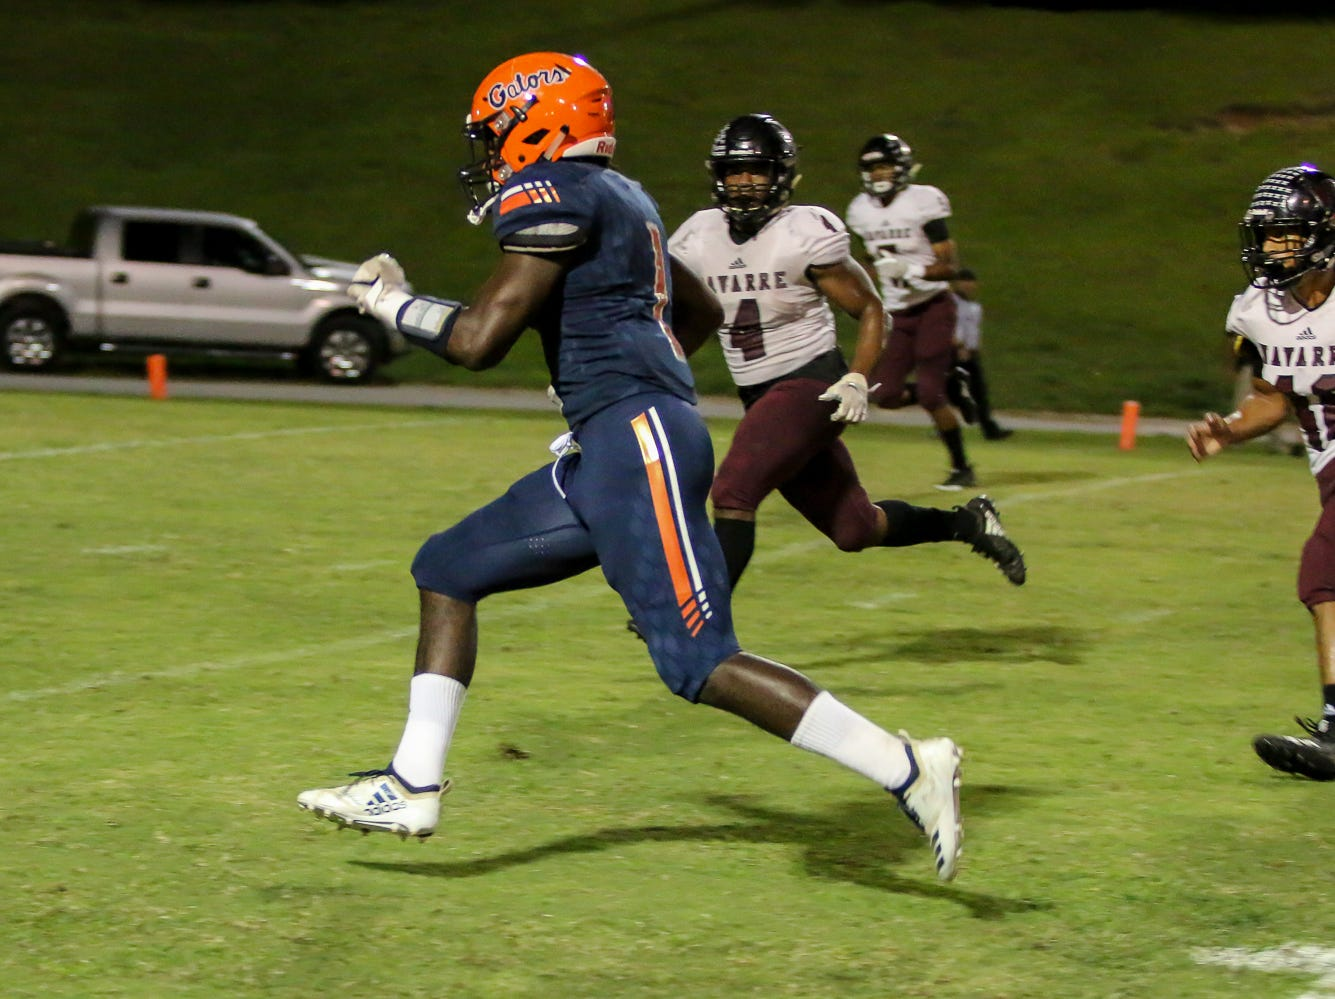 Escambia running back Frank Peasant (1) sprints past the Navarre defenders for and heads to the end zone in the homecoming game at Escambia High School on Friday, October 5, 2018.